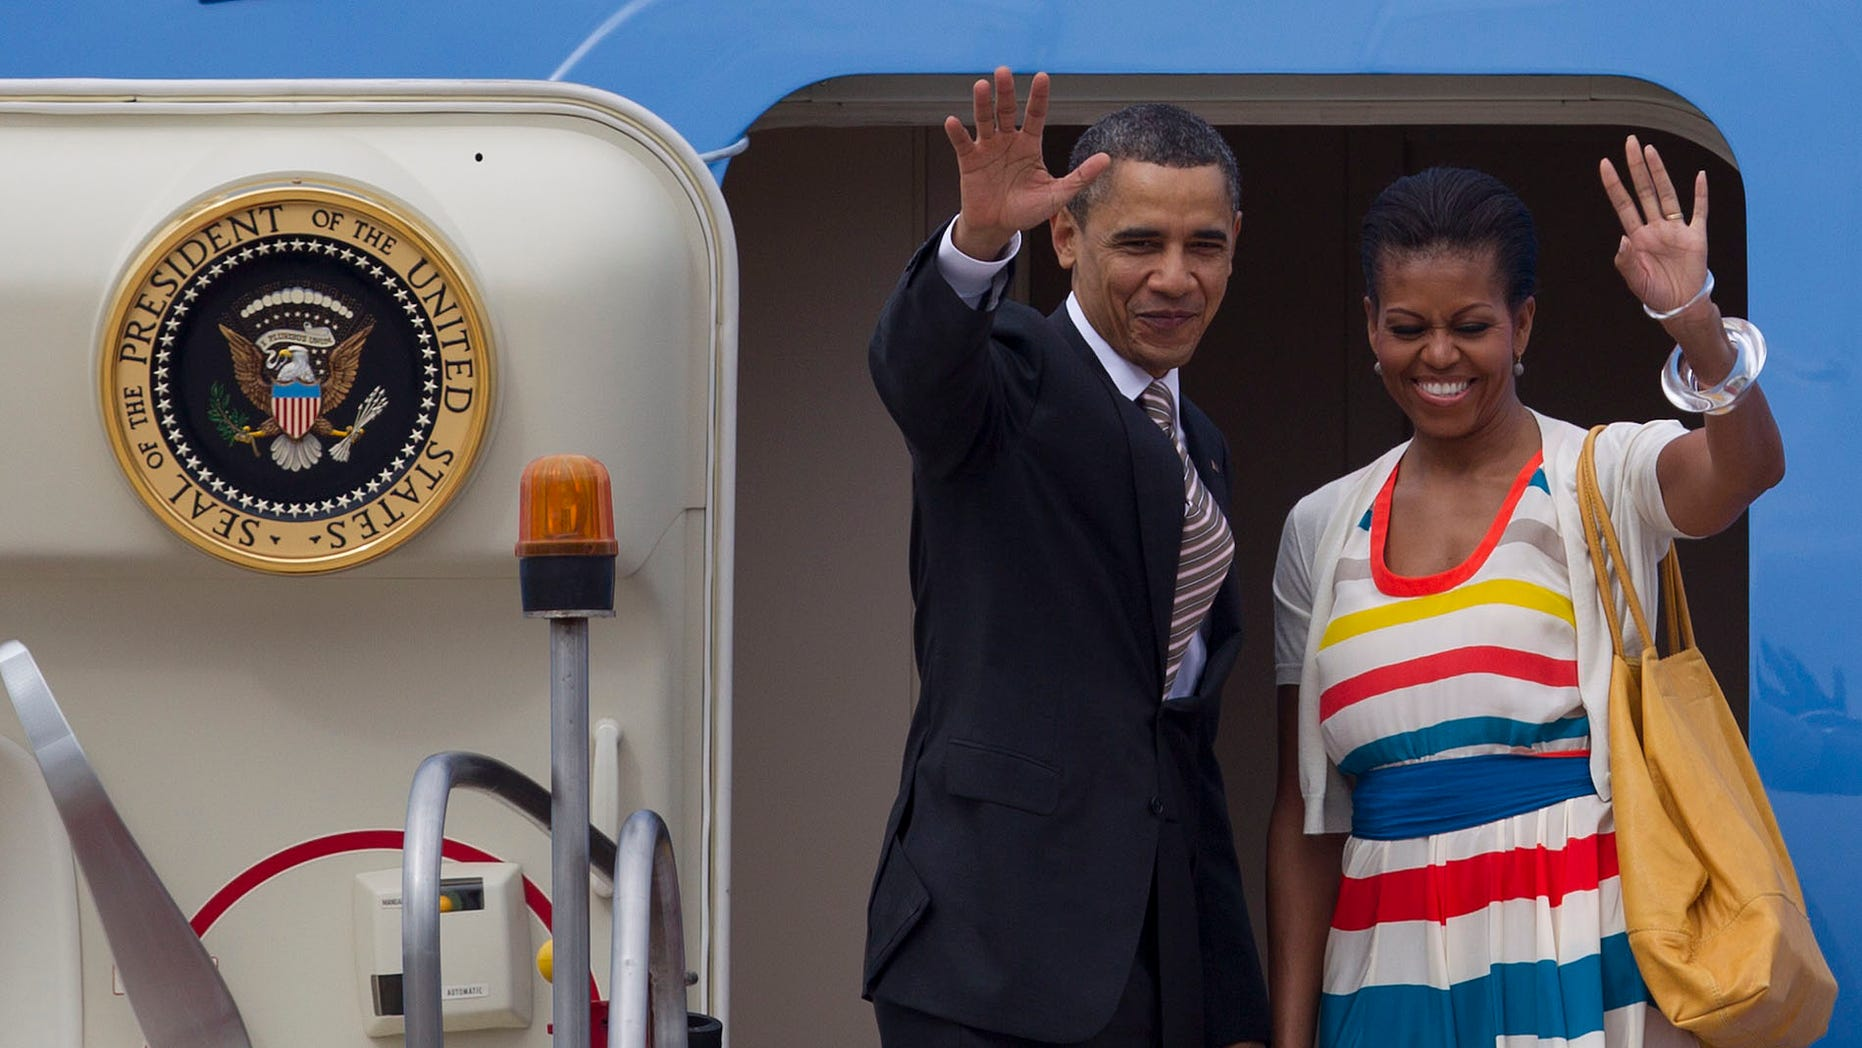 President Barack Obama, left, and his wife first lady Michelle Obama wave as they leave Rio de Janeiro, Brazil, Monday, March 21, 2011. Obama and his family flew to Santiago, Chile, on Monday morning. (AP Photo/Felipe Dana)